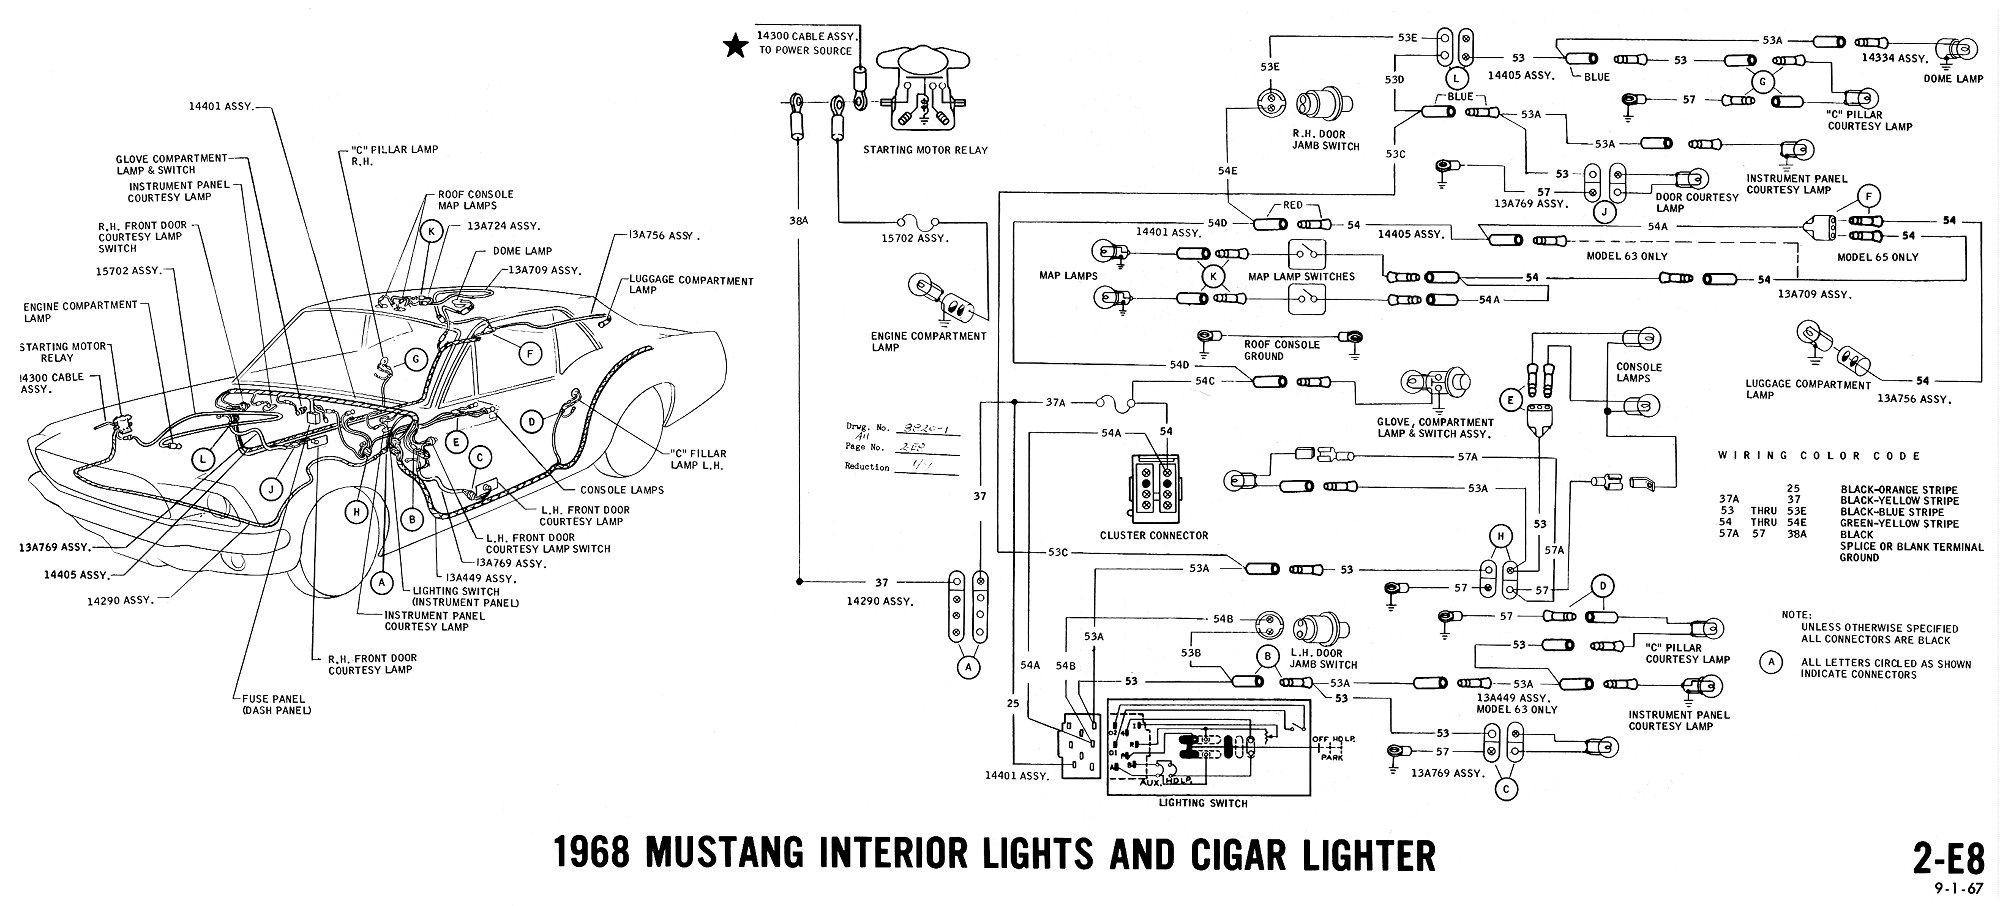 electric wiring diagram ford mustang 2009 wiring diagram Ford Mustang Wiring Schematics 65 mustang wiring harness all wiring diagram electric wiring diagram ford mustang 2009